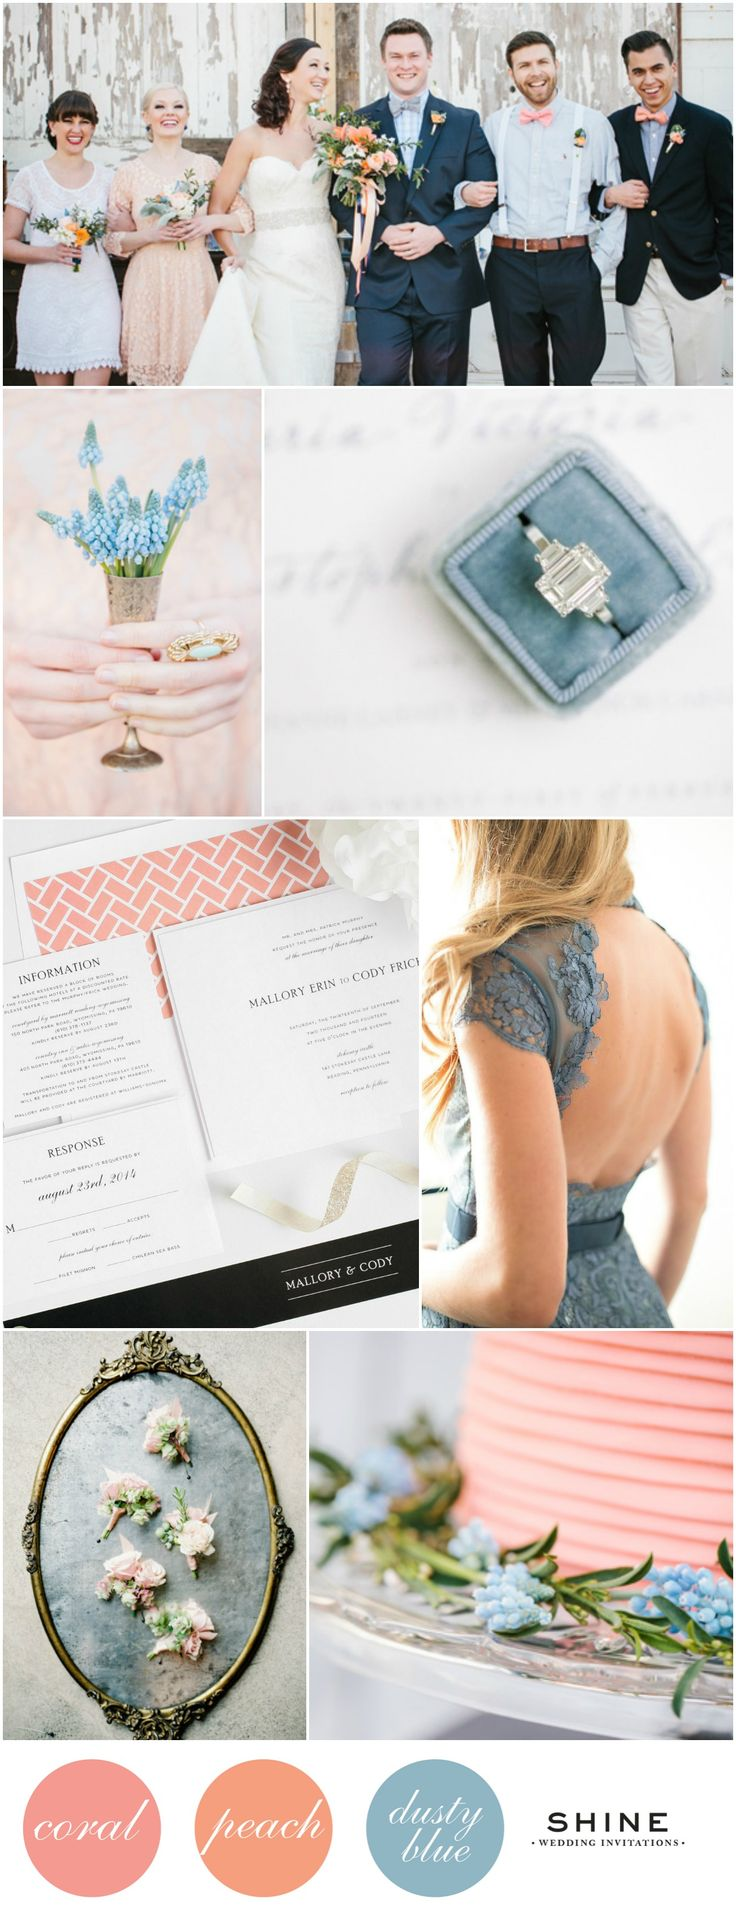 Soft and Romantic Coral, Peach, and Dusty Blue Wedding Inspiration | Shine Wedding Invitations